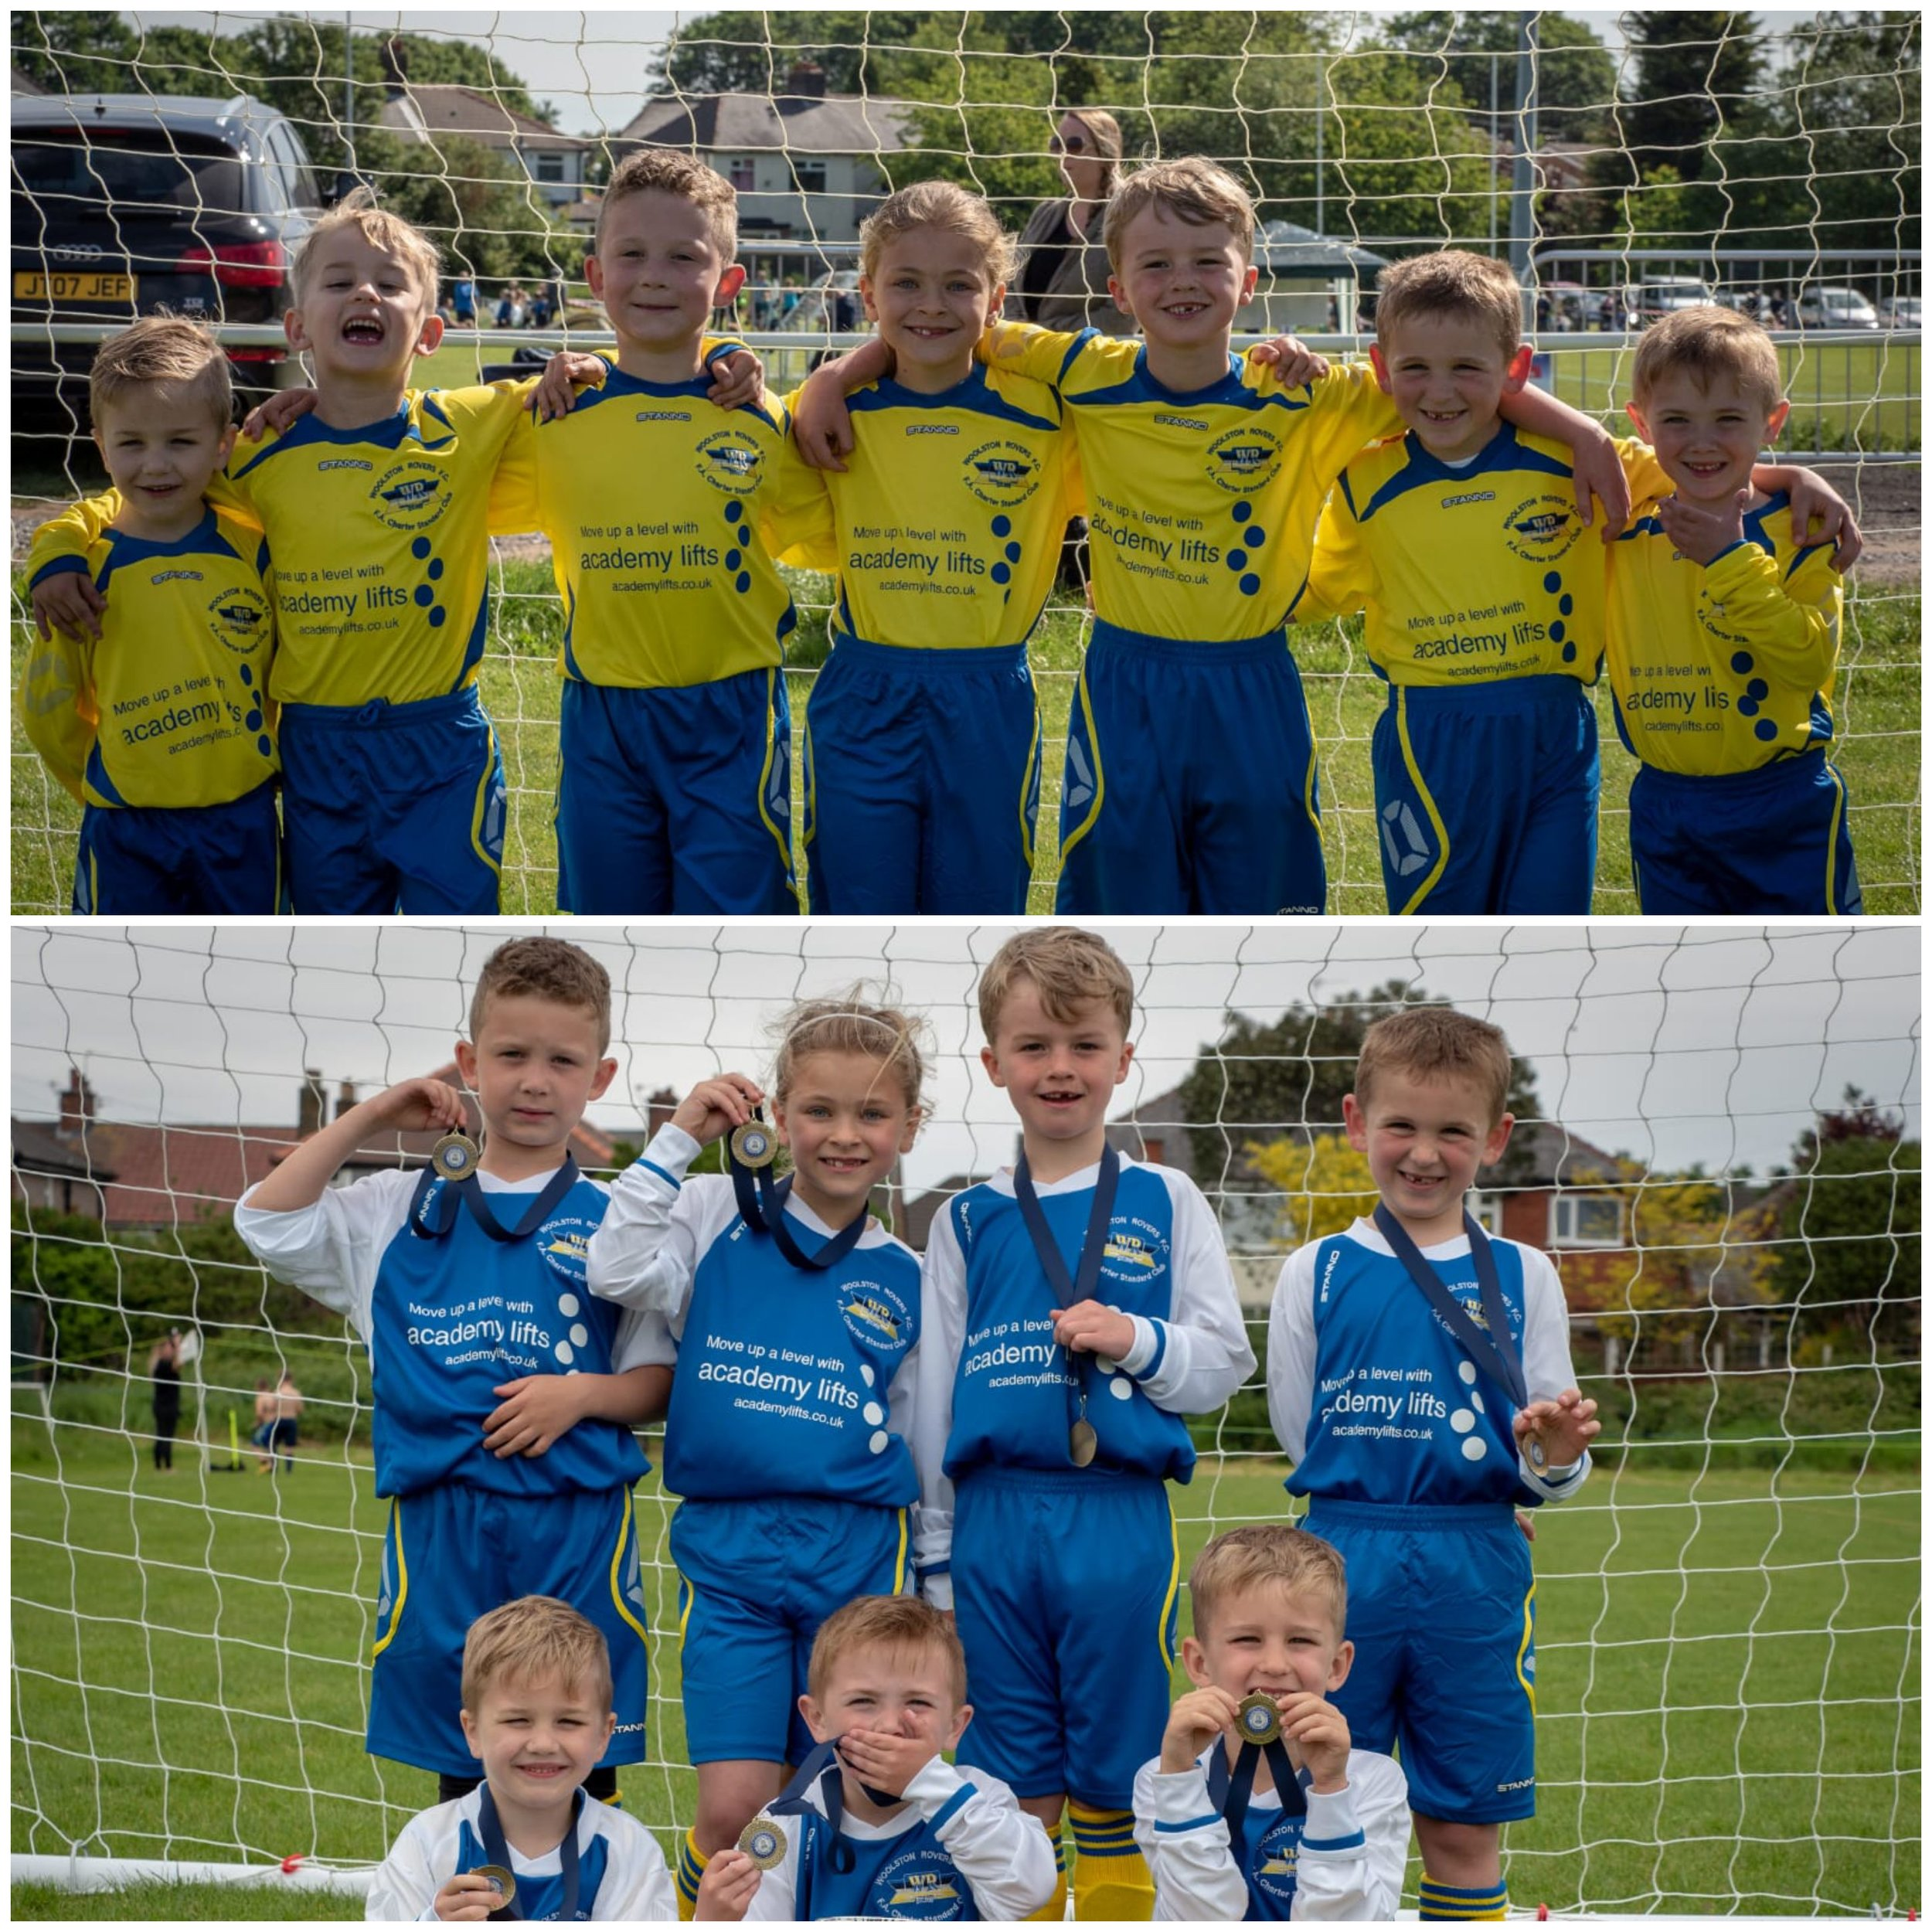 Keeping It Local! - Academy Lifts are proud to be sponsoring Woolston Rovers U6's this season.